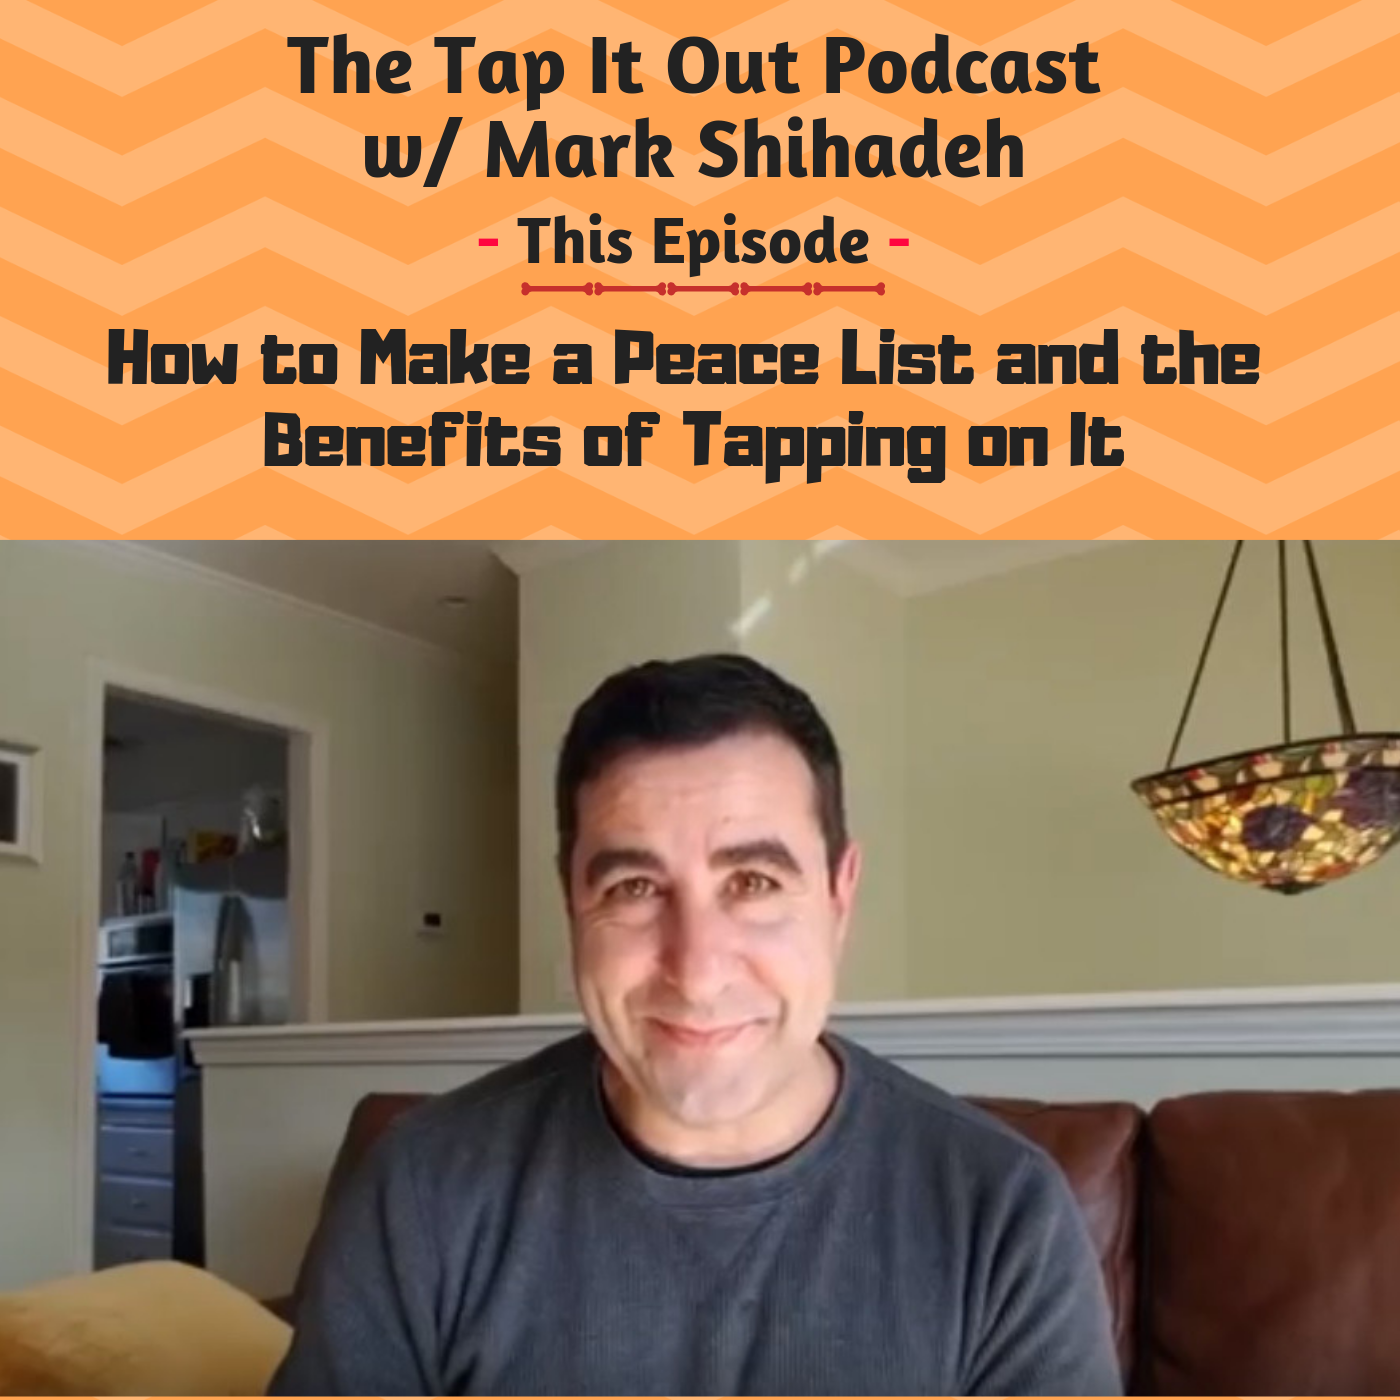 Ep12: How to Make a Peace List and the Benefits of Tapping on It